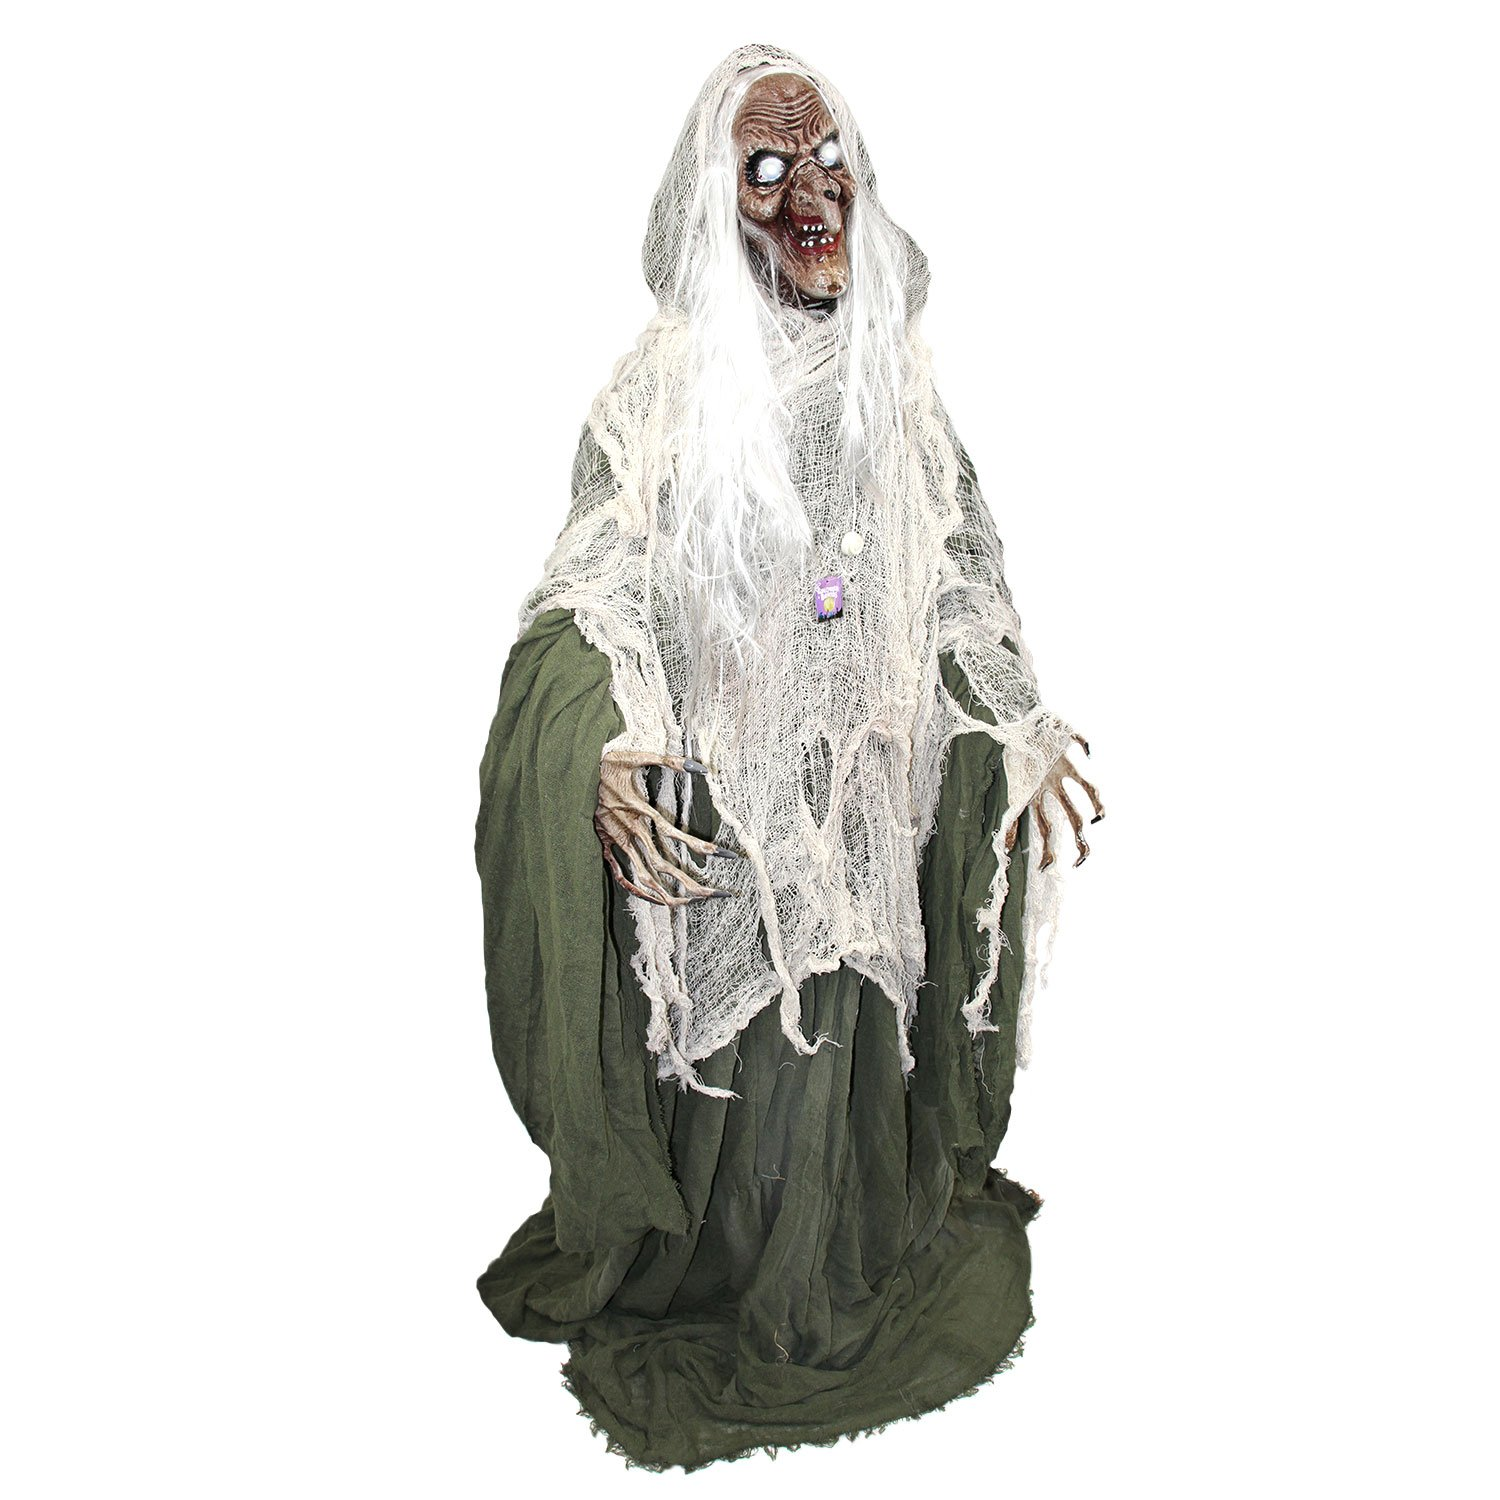 Halloween Haunters 5 foot Animated Standing Scary Evil Wicked Witch Prop Decoration - Turning Head, Moans, Cackles, LED Eyes